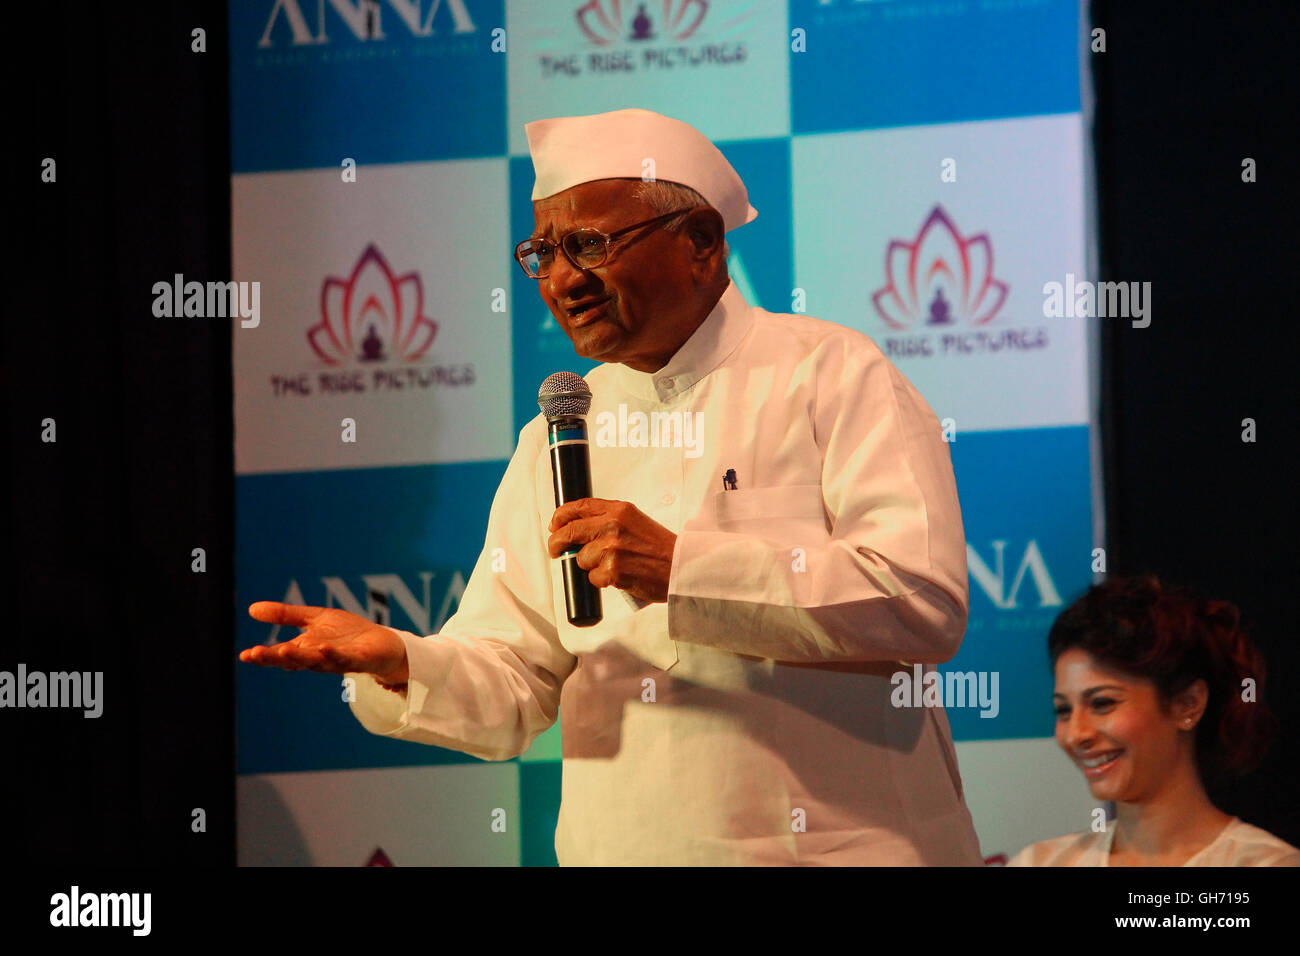 Famous Personality Anna Hazare saying a few words of wisdom on the poster launch ceremony of an upcoming biopic - Stock Image